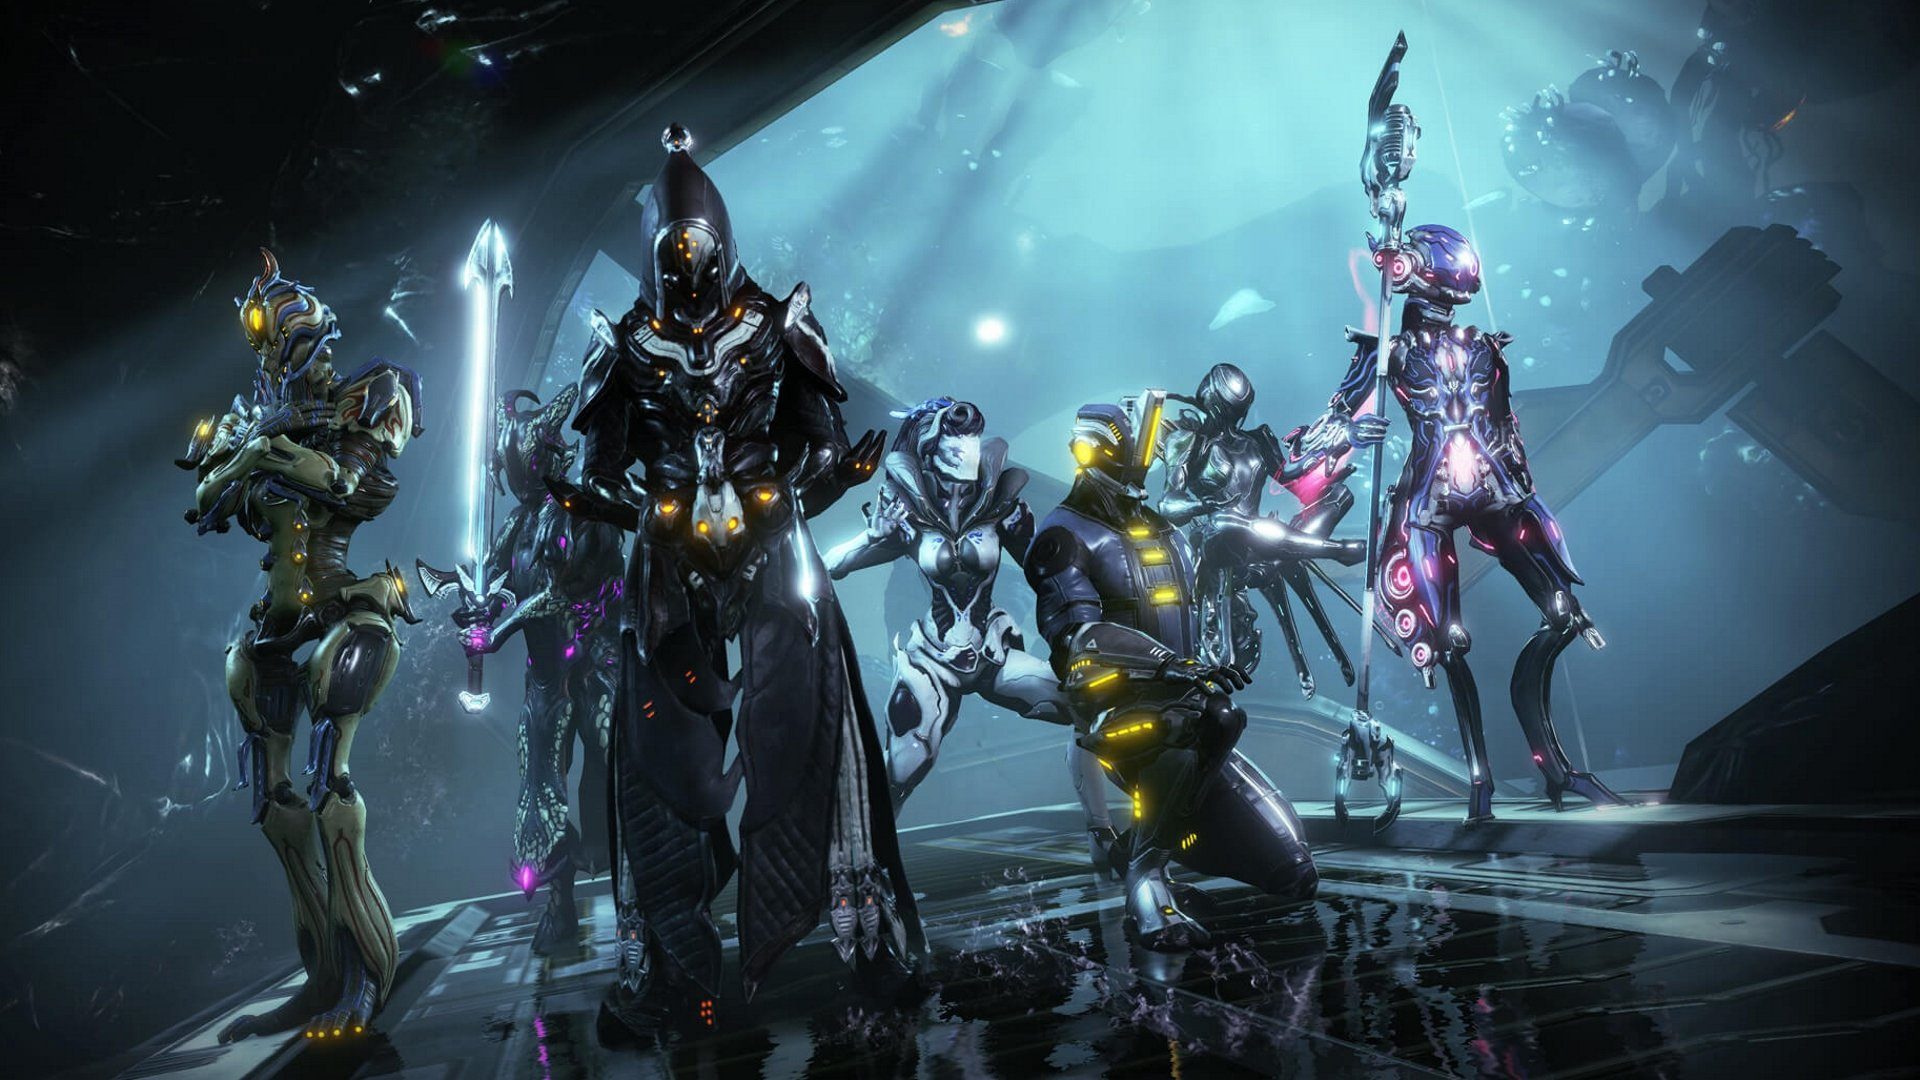 Is warframe going to be cross platform